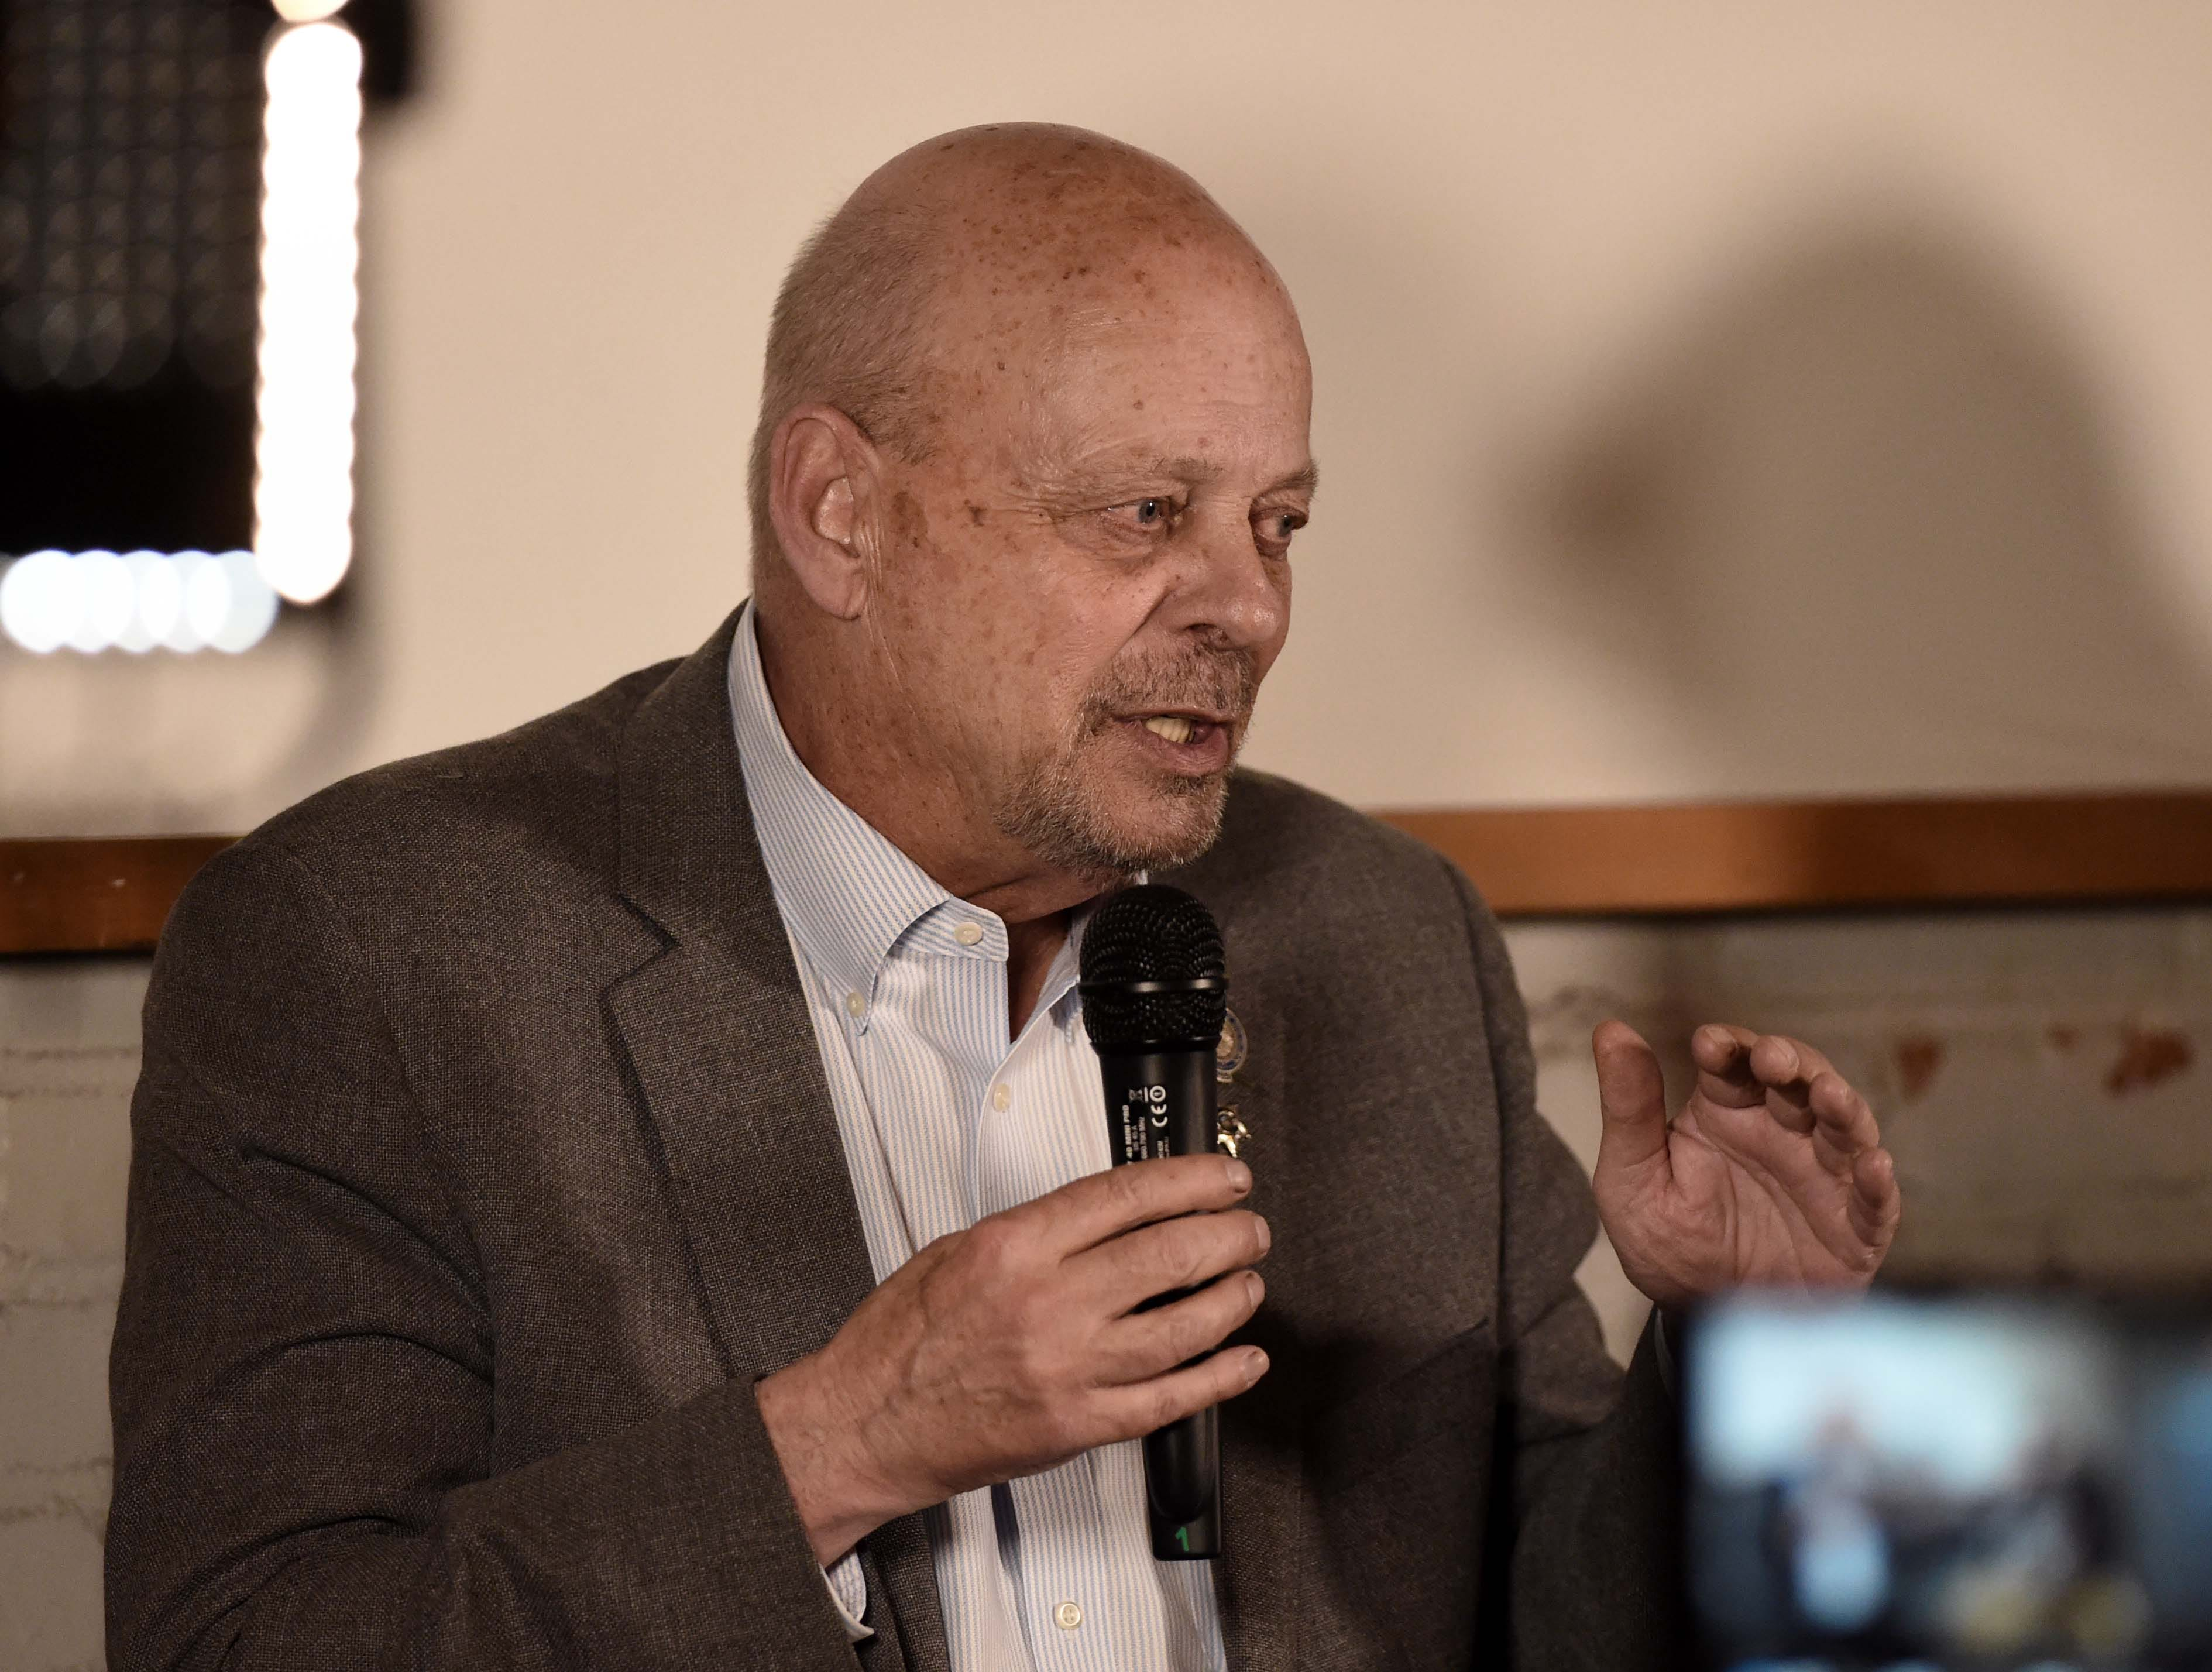 Images from RGJ's monthly Pints and Politics featuring Assembly Speaker Jason Frierson, D-Las Vegas, and Minority Floor Leader Jim Wheeler, R-Minden, hosted by RGJ politics reporter James DeHaven and executive editor Brian Duggan.